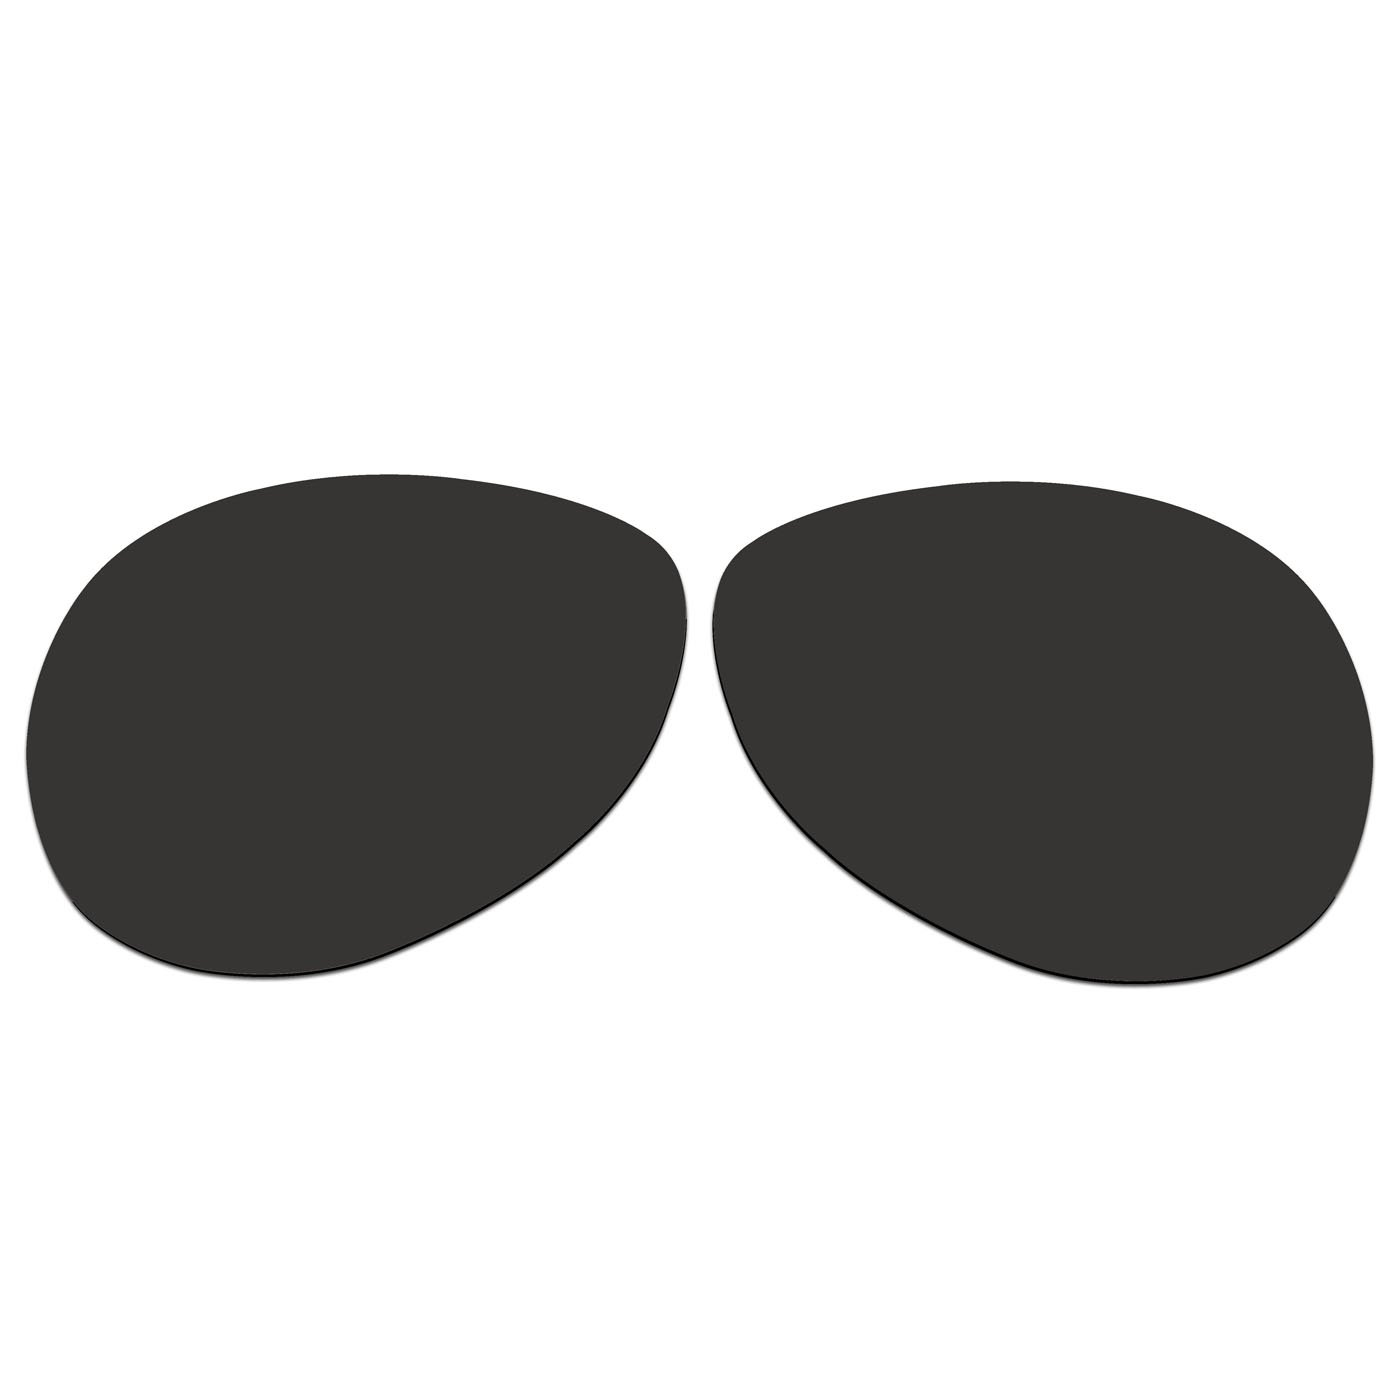 cd4574fcc3a Amazon.com   ACOMPATIBLE Replacement Lenses for Oakley Tie Breaker  Sunglasses OO4108 (Black - Polarized)   Sports   Outdoors